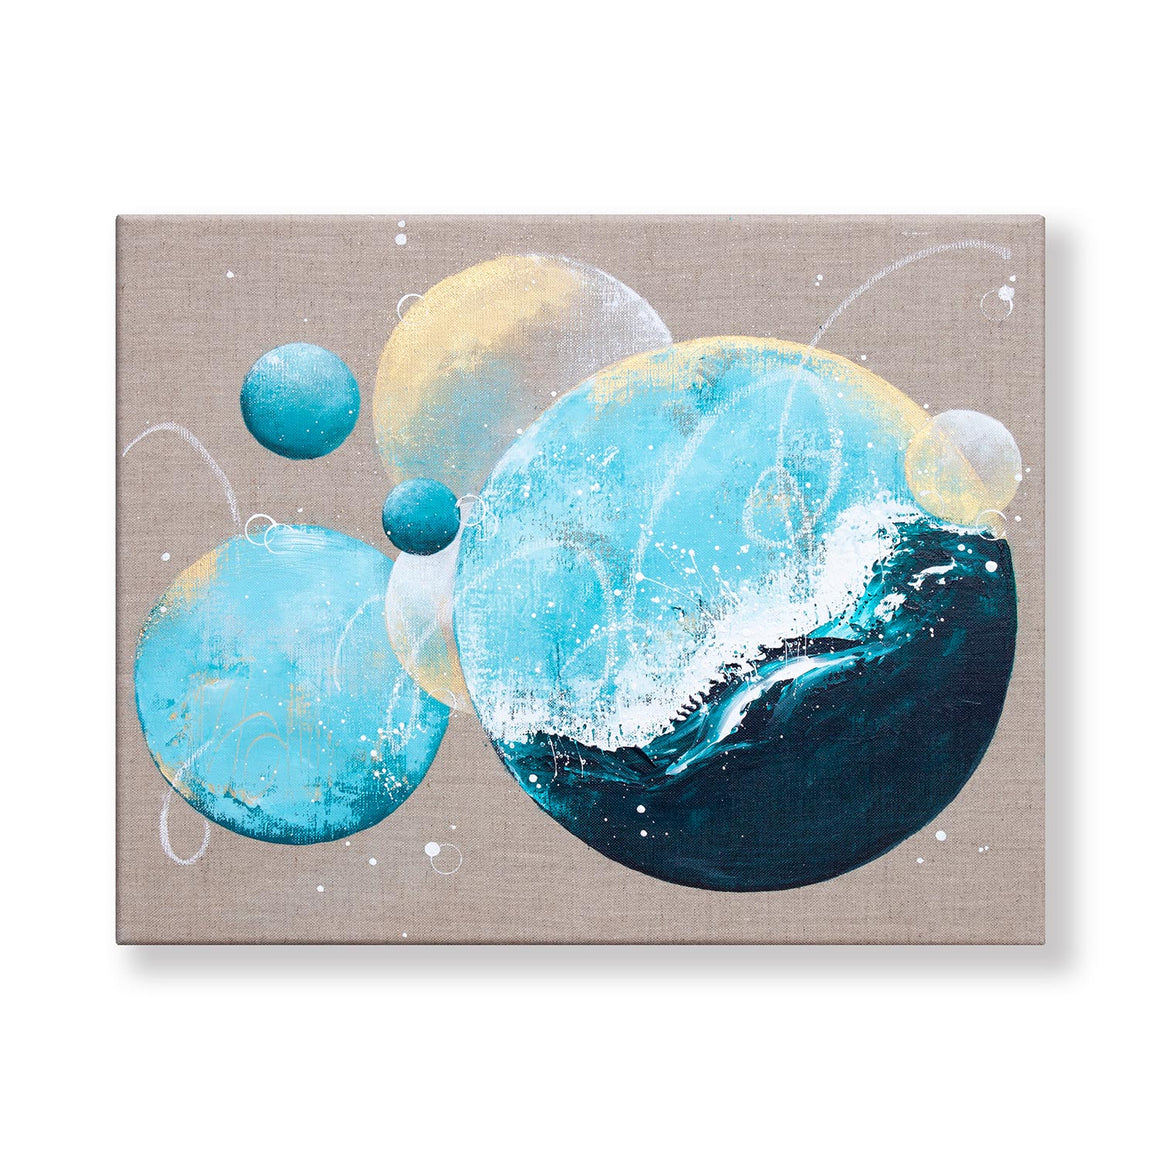 Riptide Moonbathing Painting 40cm x 50cm on Raw Linen Canvas